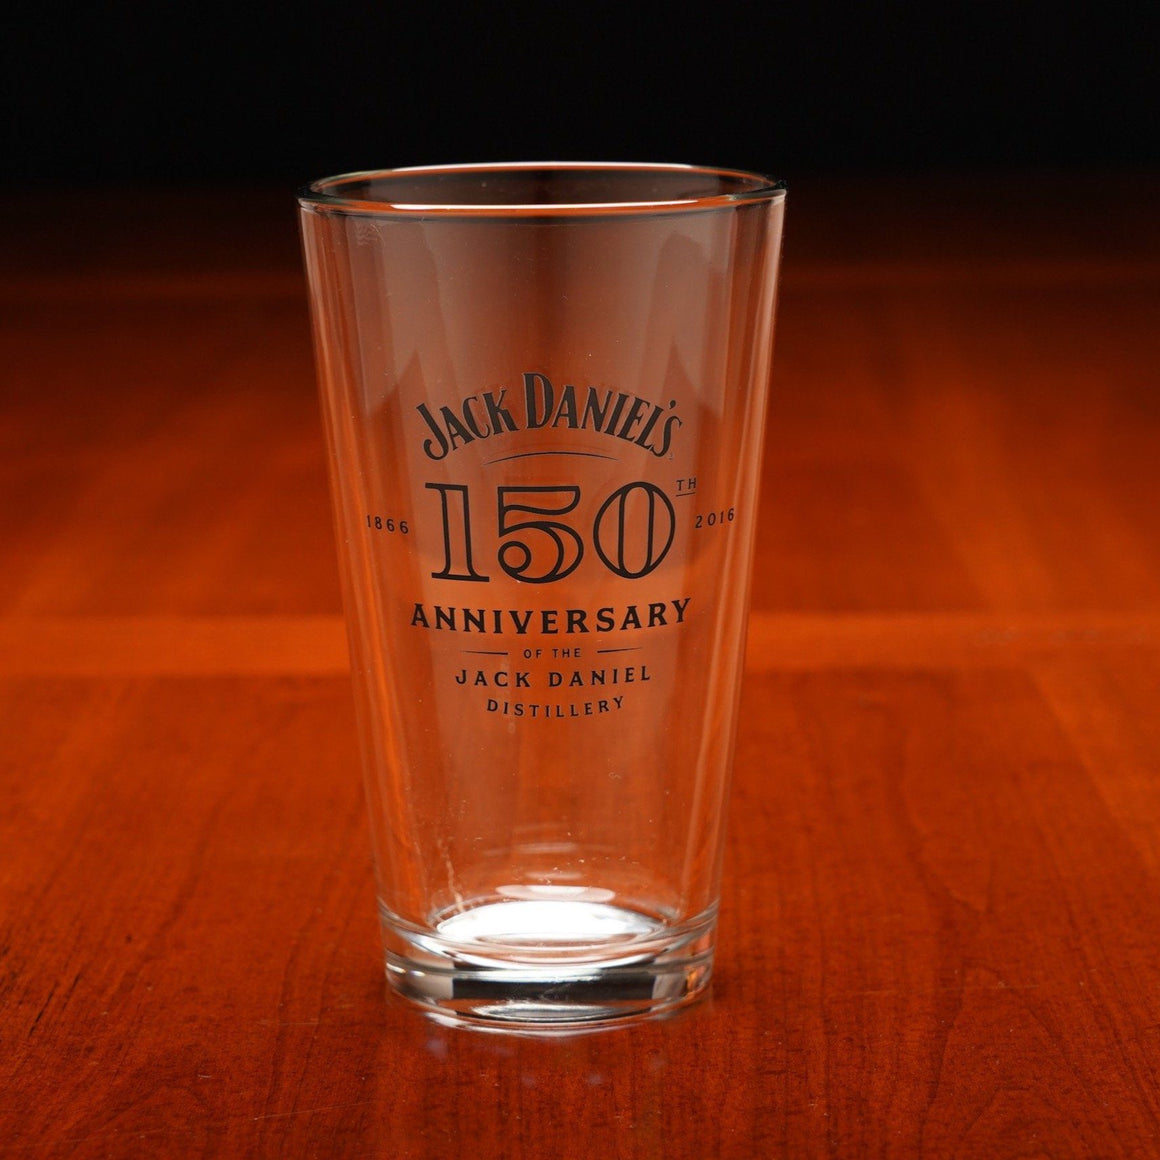 Jack Daniel's 150th Anniversary Pint Glass  at The Whiskey Cave